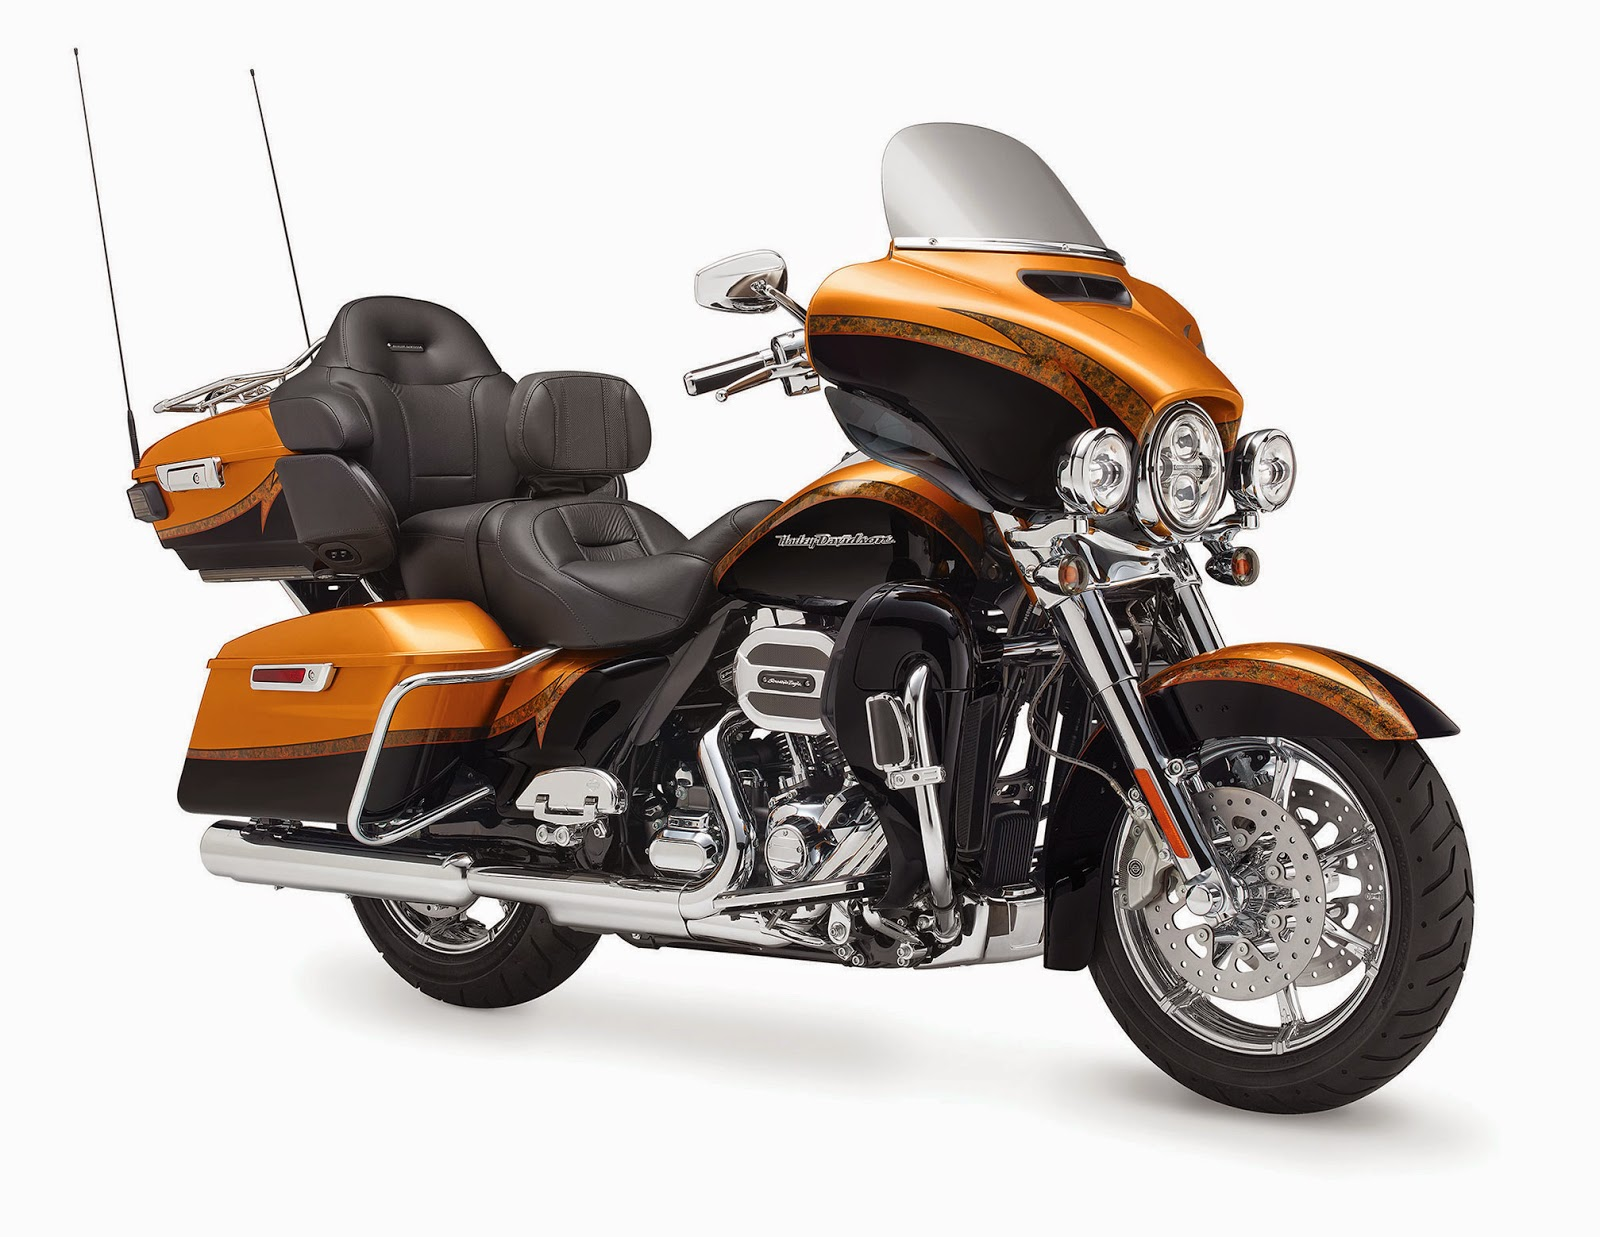 2015 Harley Davidson FLHTKSE CVO Limited4 december 2014 Wiring Diagrams Harley Panhead at gsmx.co